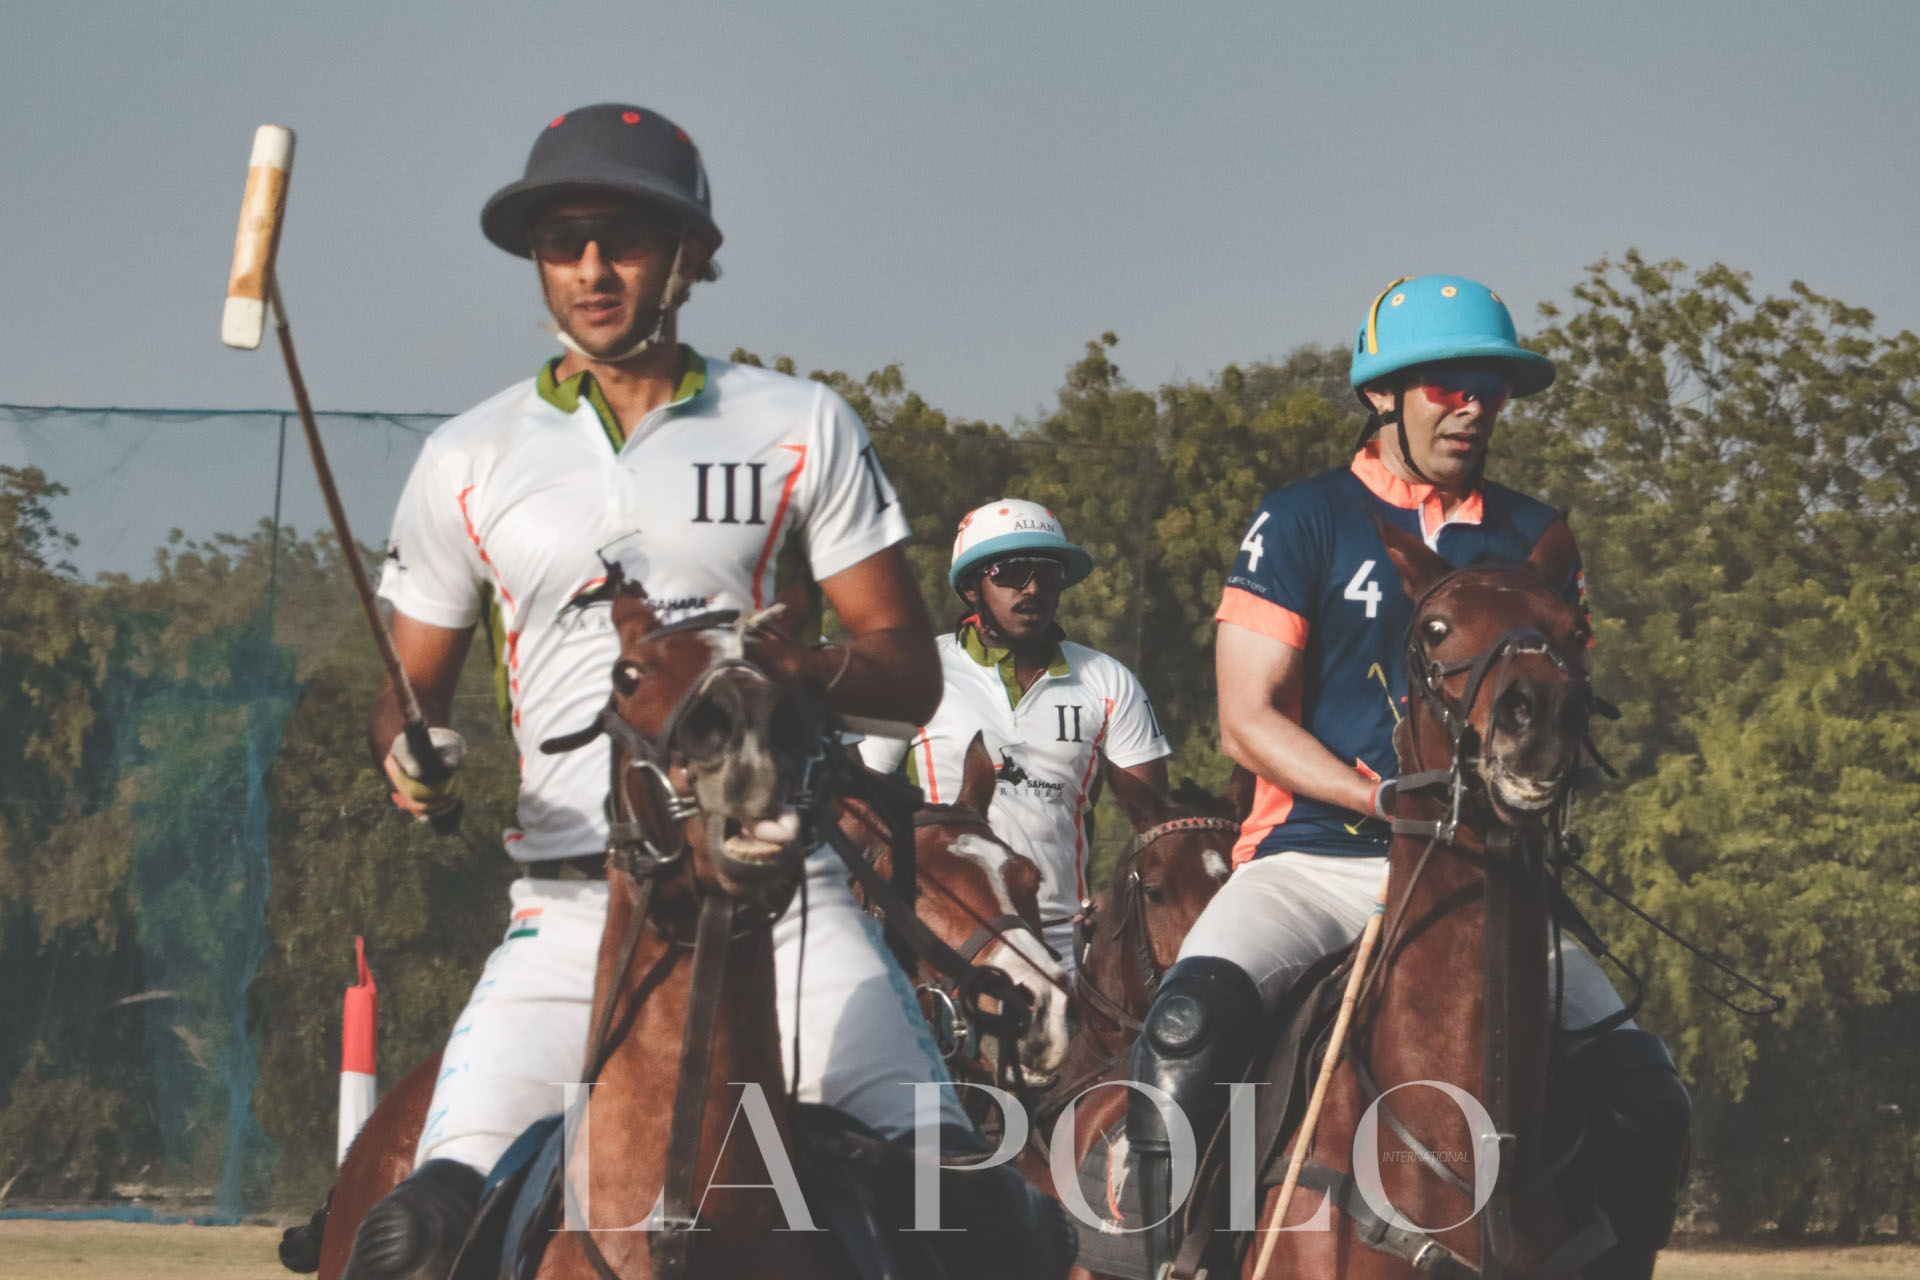 THE CONCLUDING COVETED TOURNAMENT; POLO FACTORY MAHARAJA OF JODHPUR GOLDEN JUBILEE CUP (10 Goals) KICKS OFF WITH THE FINALS TO BE PLAYED ON 30TH DECEMBER TO END THE 21ST JODHPUR POLO SEASON 2020!